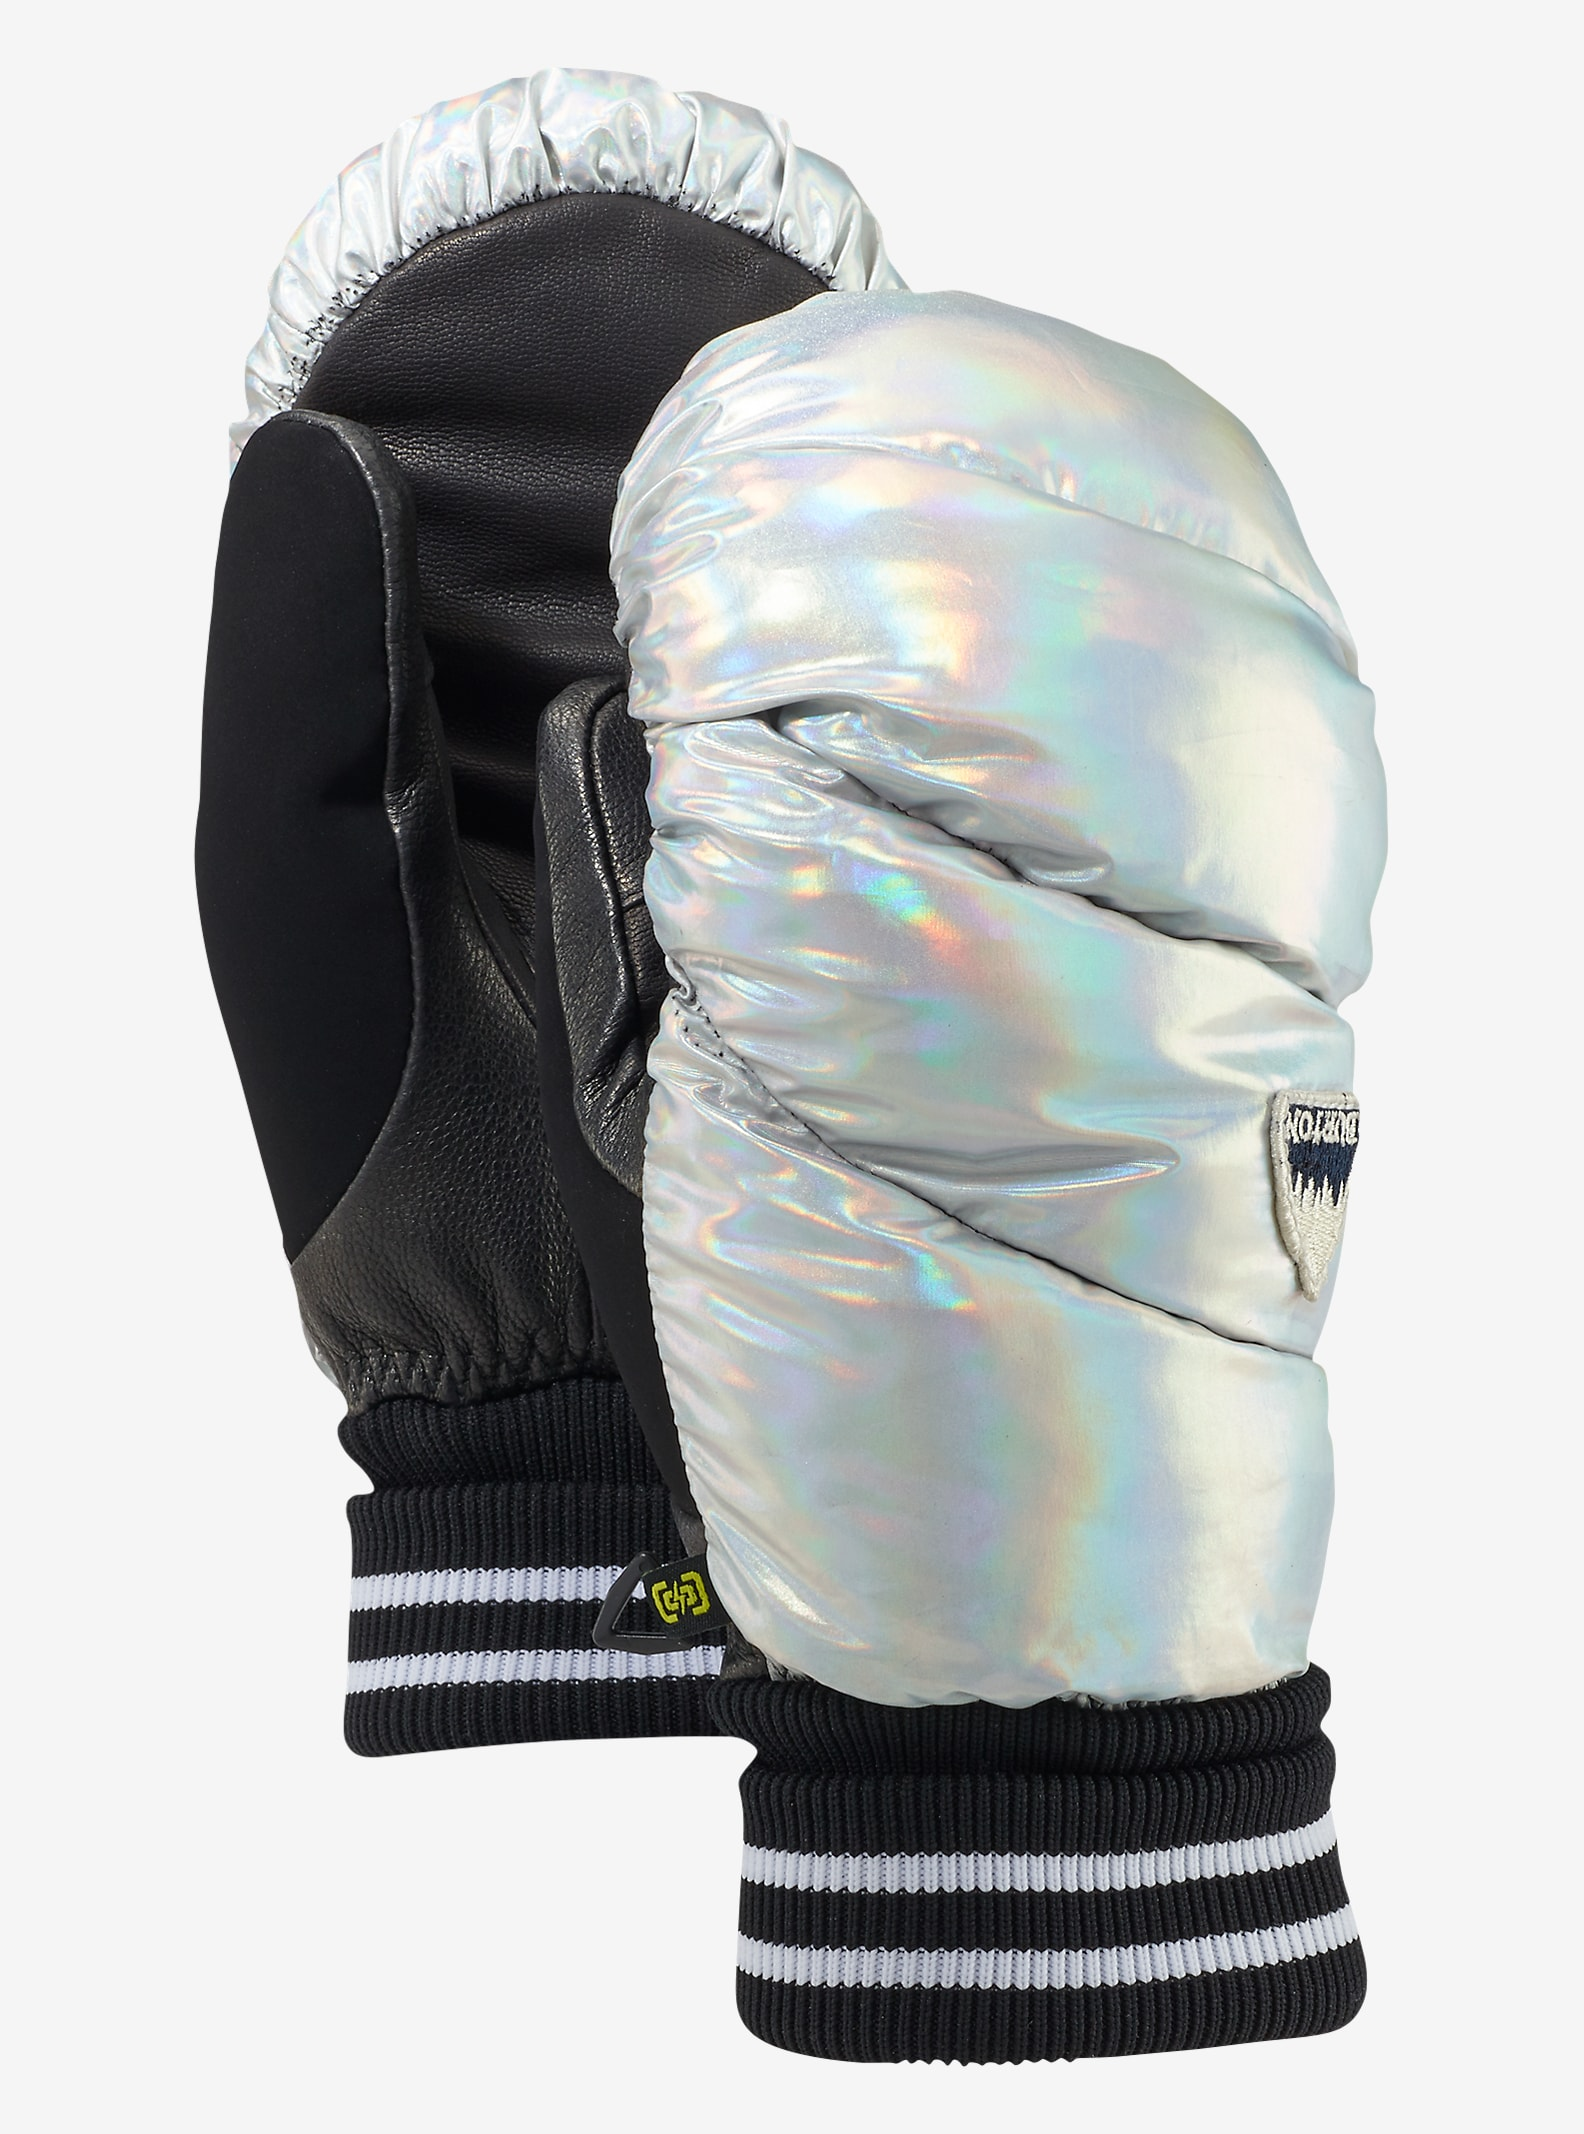 Burton Women's Warmest Mitt shown in Iridescent